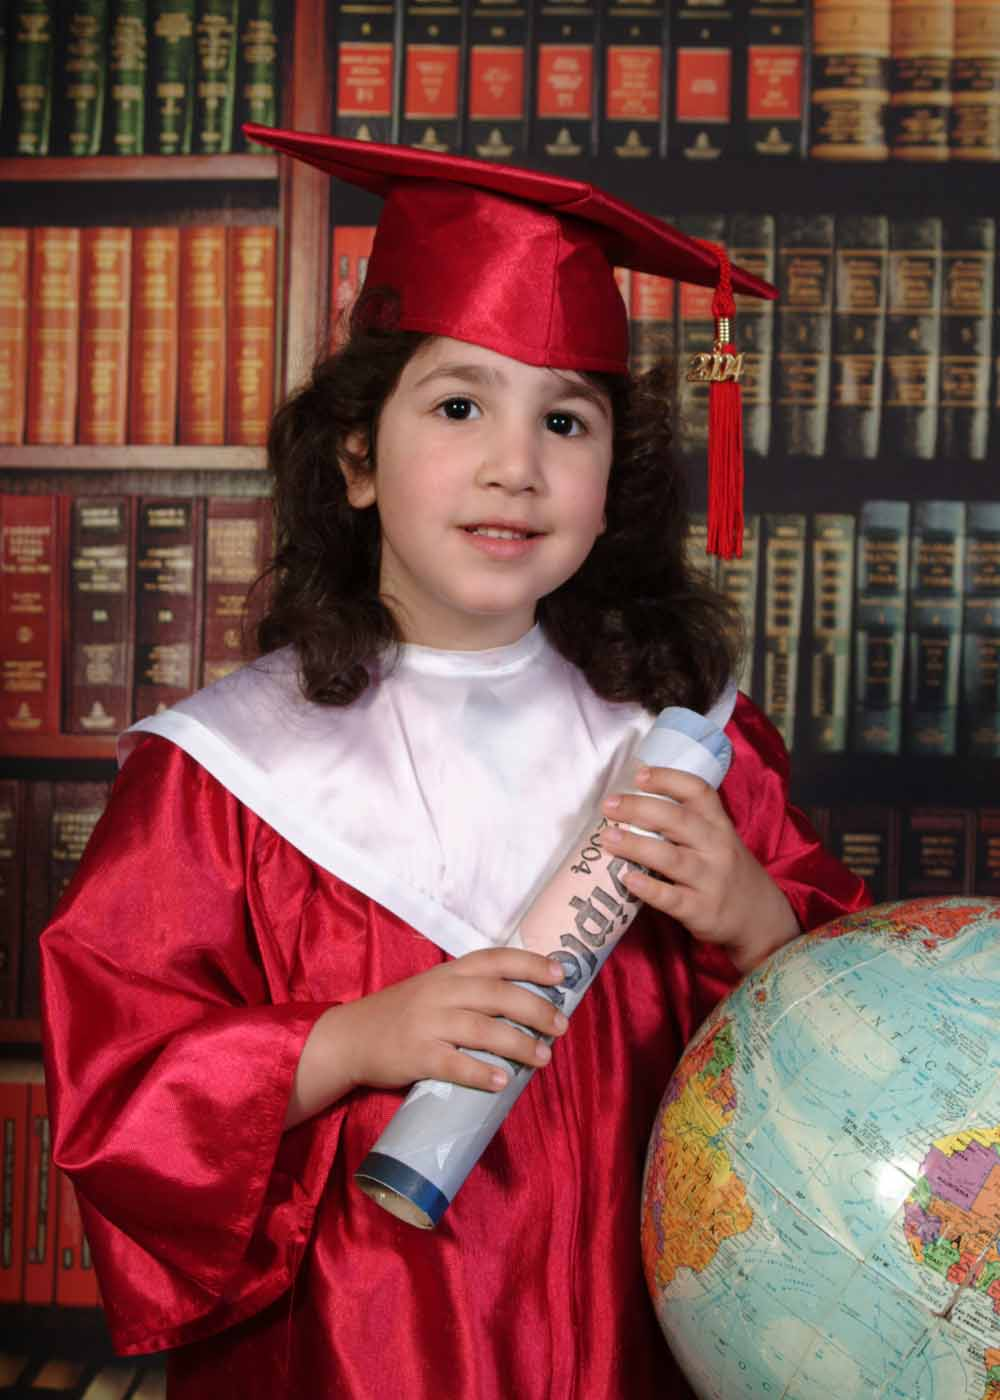 professional photography services nyc  school and senior